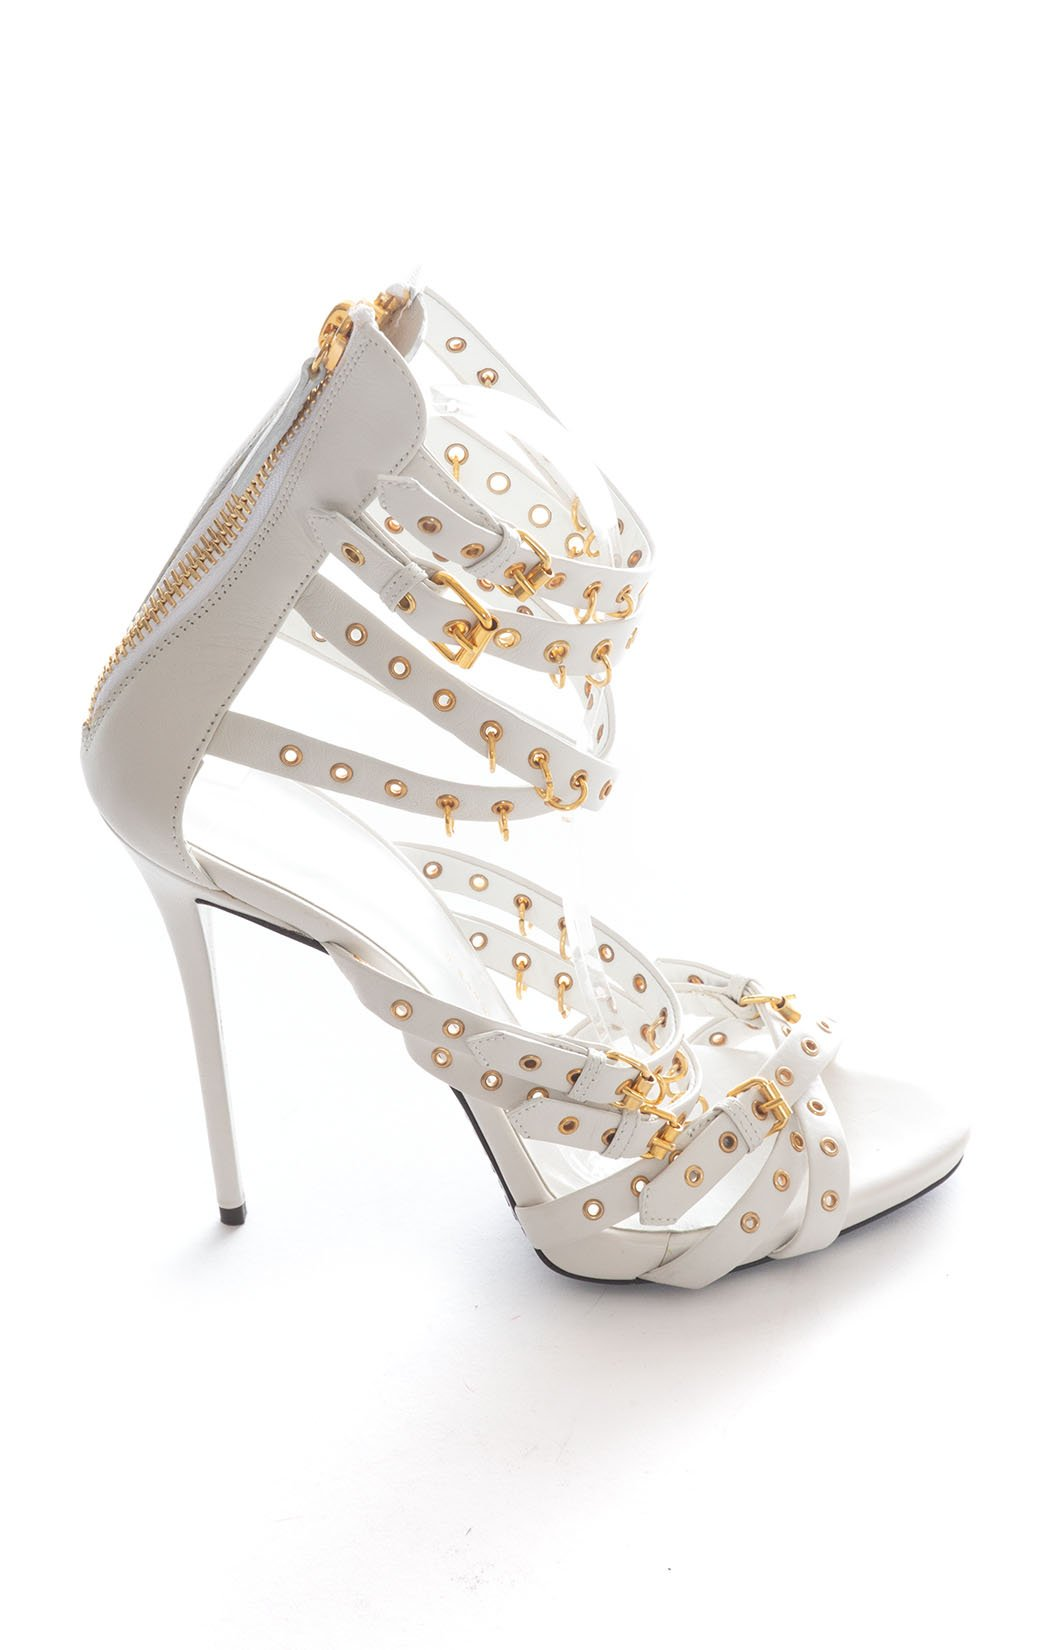 Side view of GUISEPPE ZANOTTI Sandal